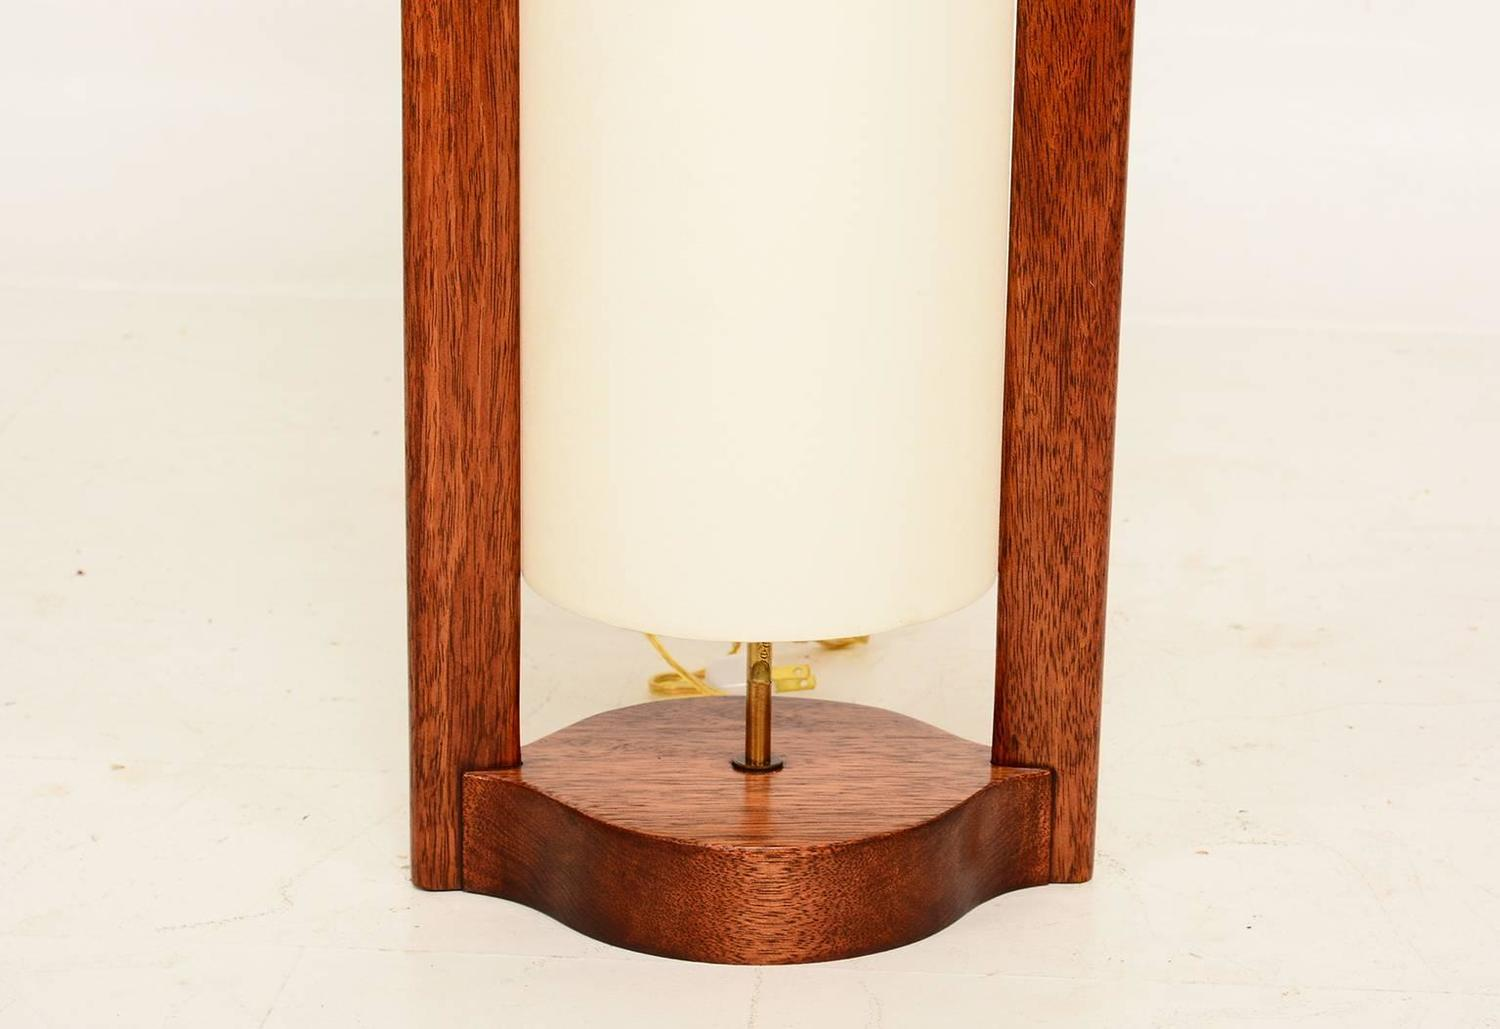 mid century modern walnut wood table lamp for sale at 1stdibs. Black Bedroom Furniture Sets. Home Design Ideas